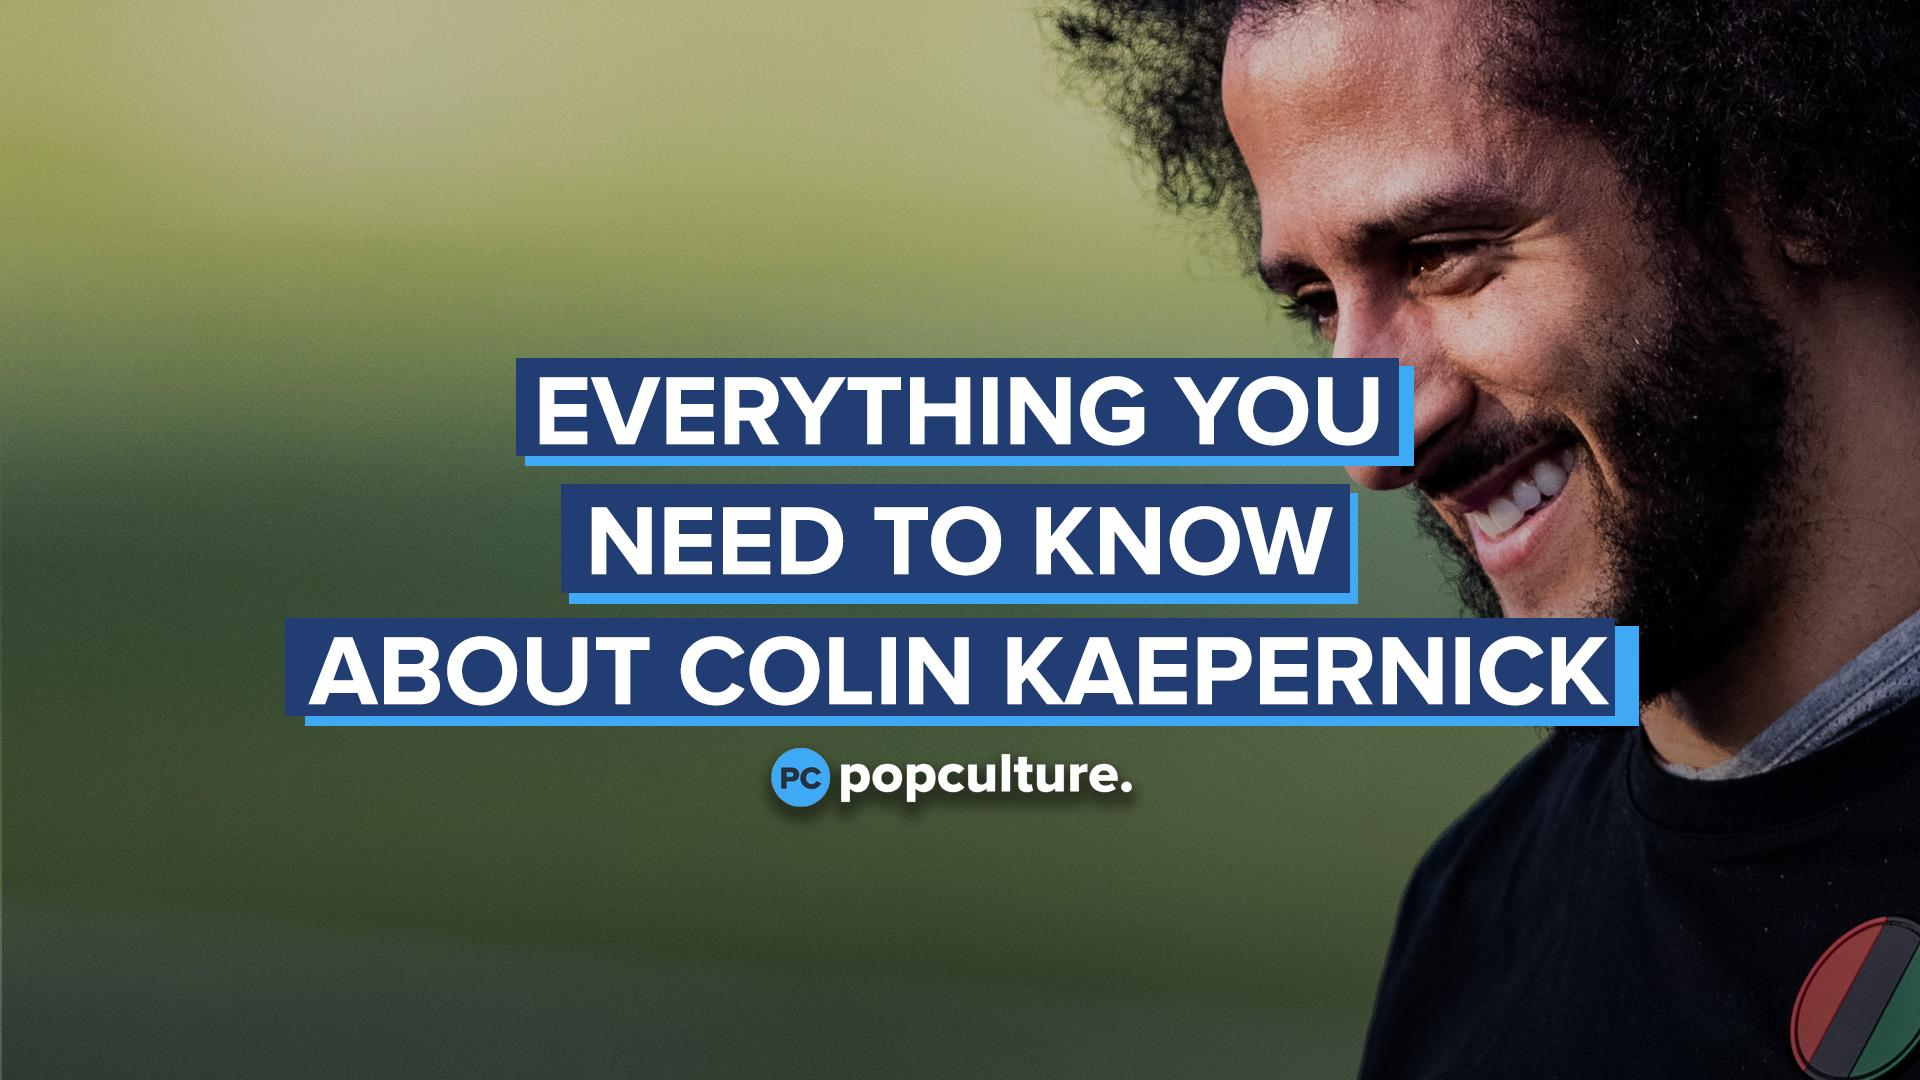 Everything You Need to Know About Colin Kaepernick screen capture